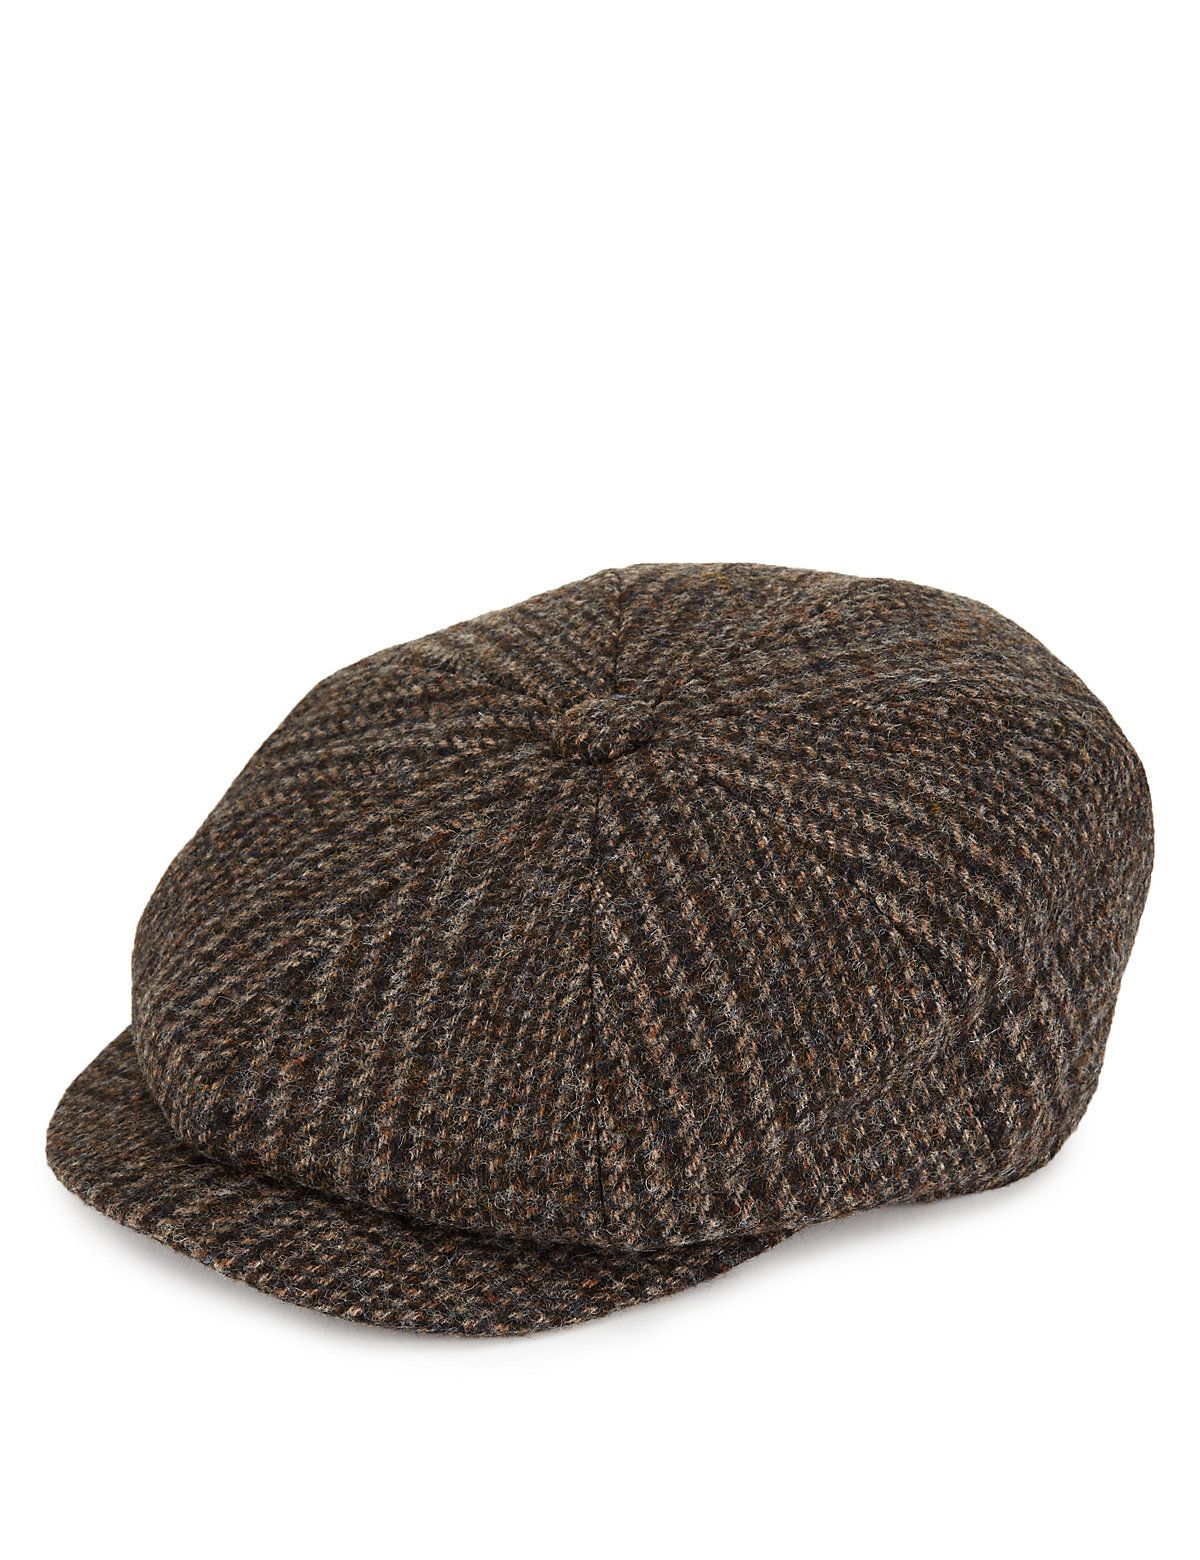 ee676d79462b0 Pure Wool Baker Boy Checked Flat Cap with Thinsulate™   Stormwear ...